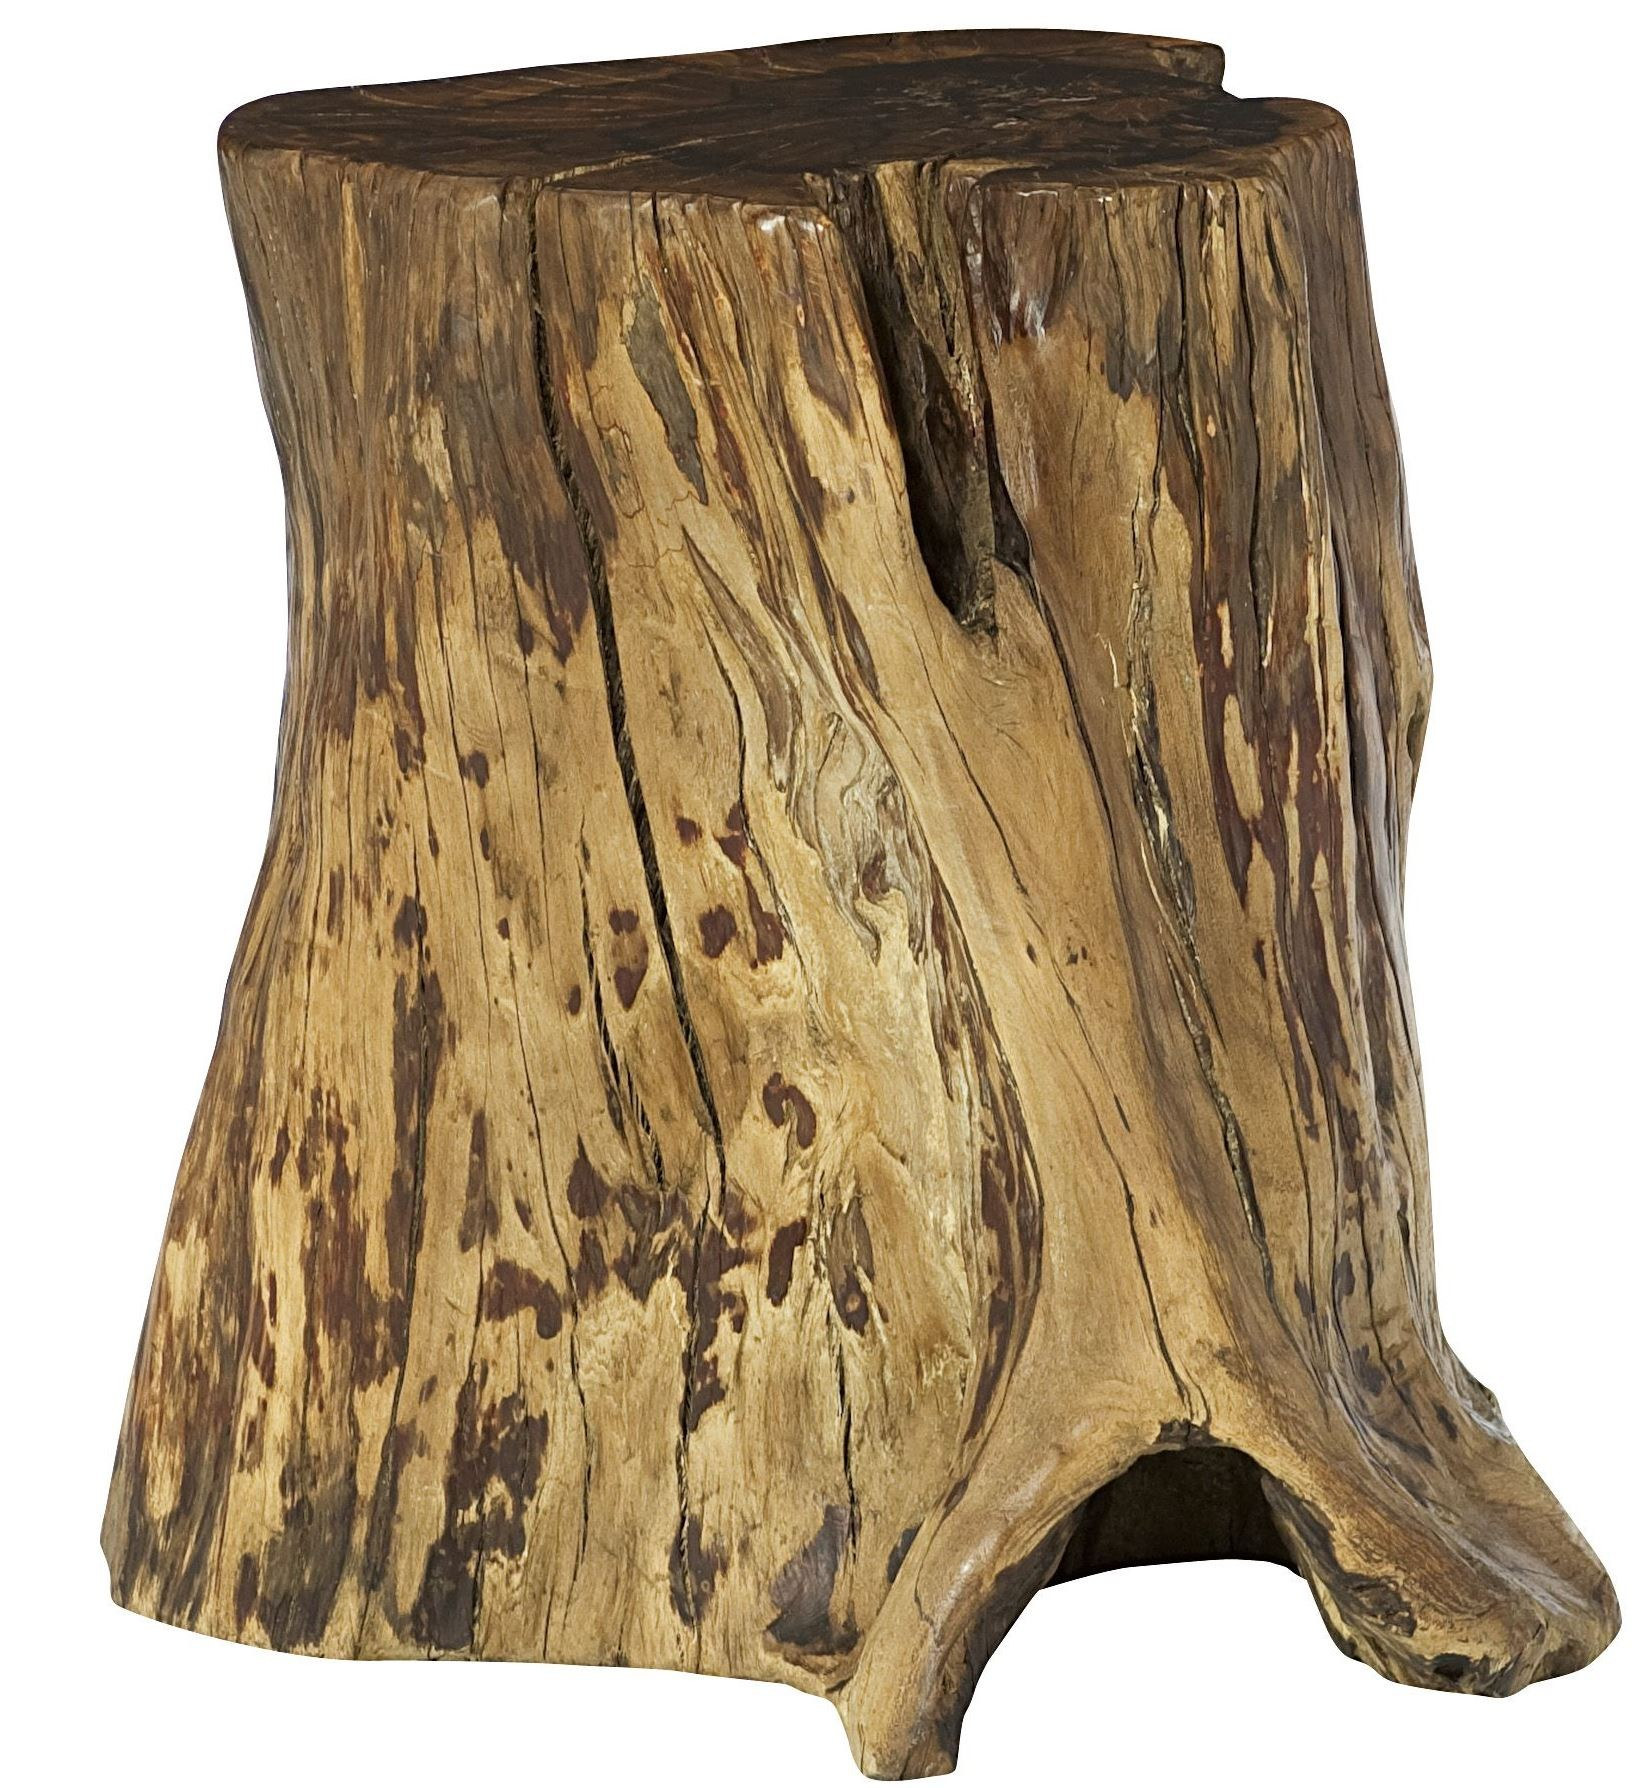 hidden treasures tree trunk accent table from hammary ham alt small entryway console find furniture futon covers kohls cupcake carrier target french antique bedroom chairs patio